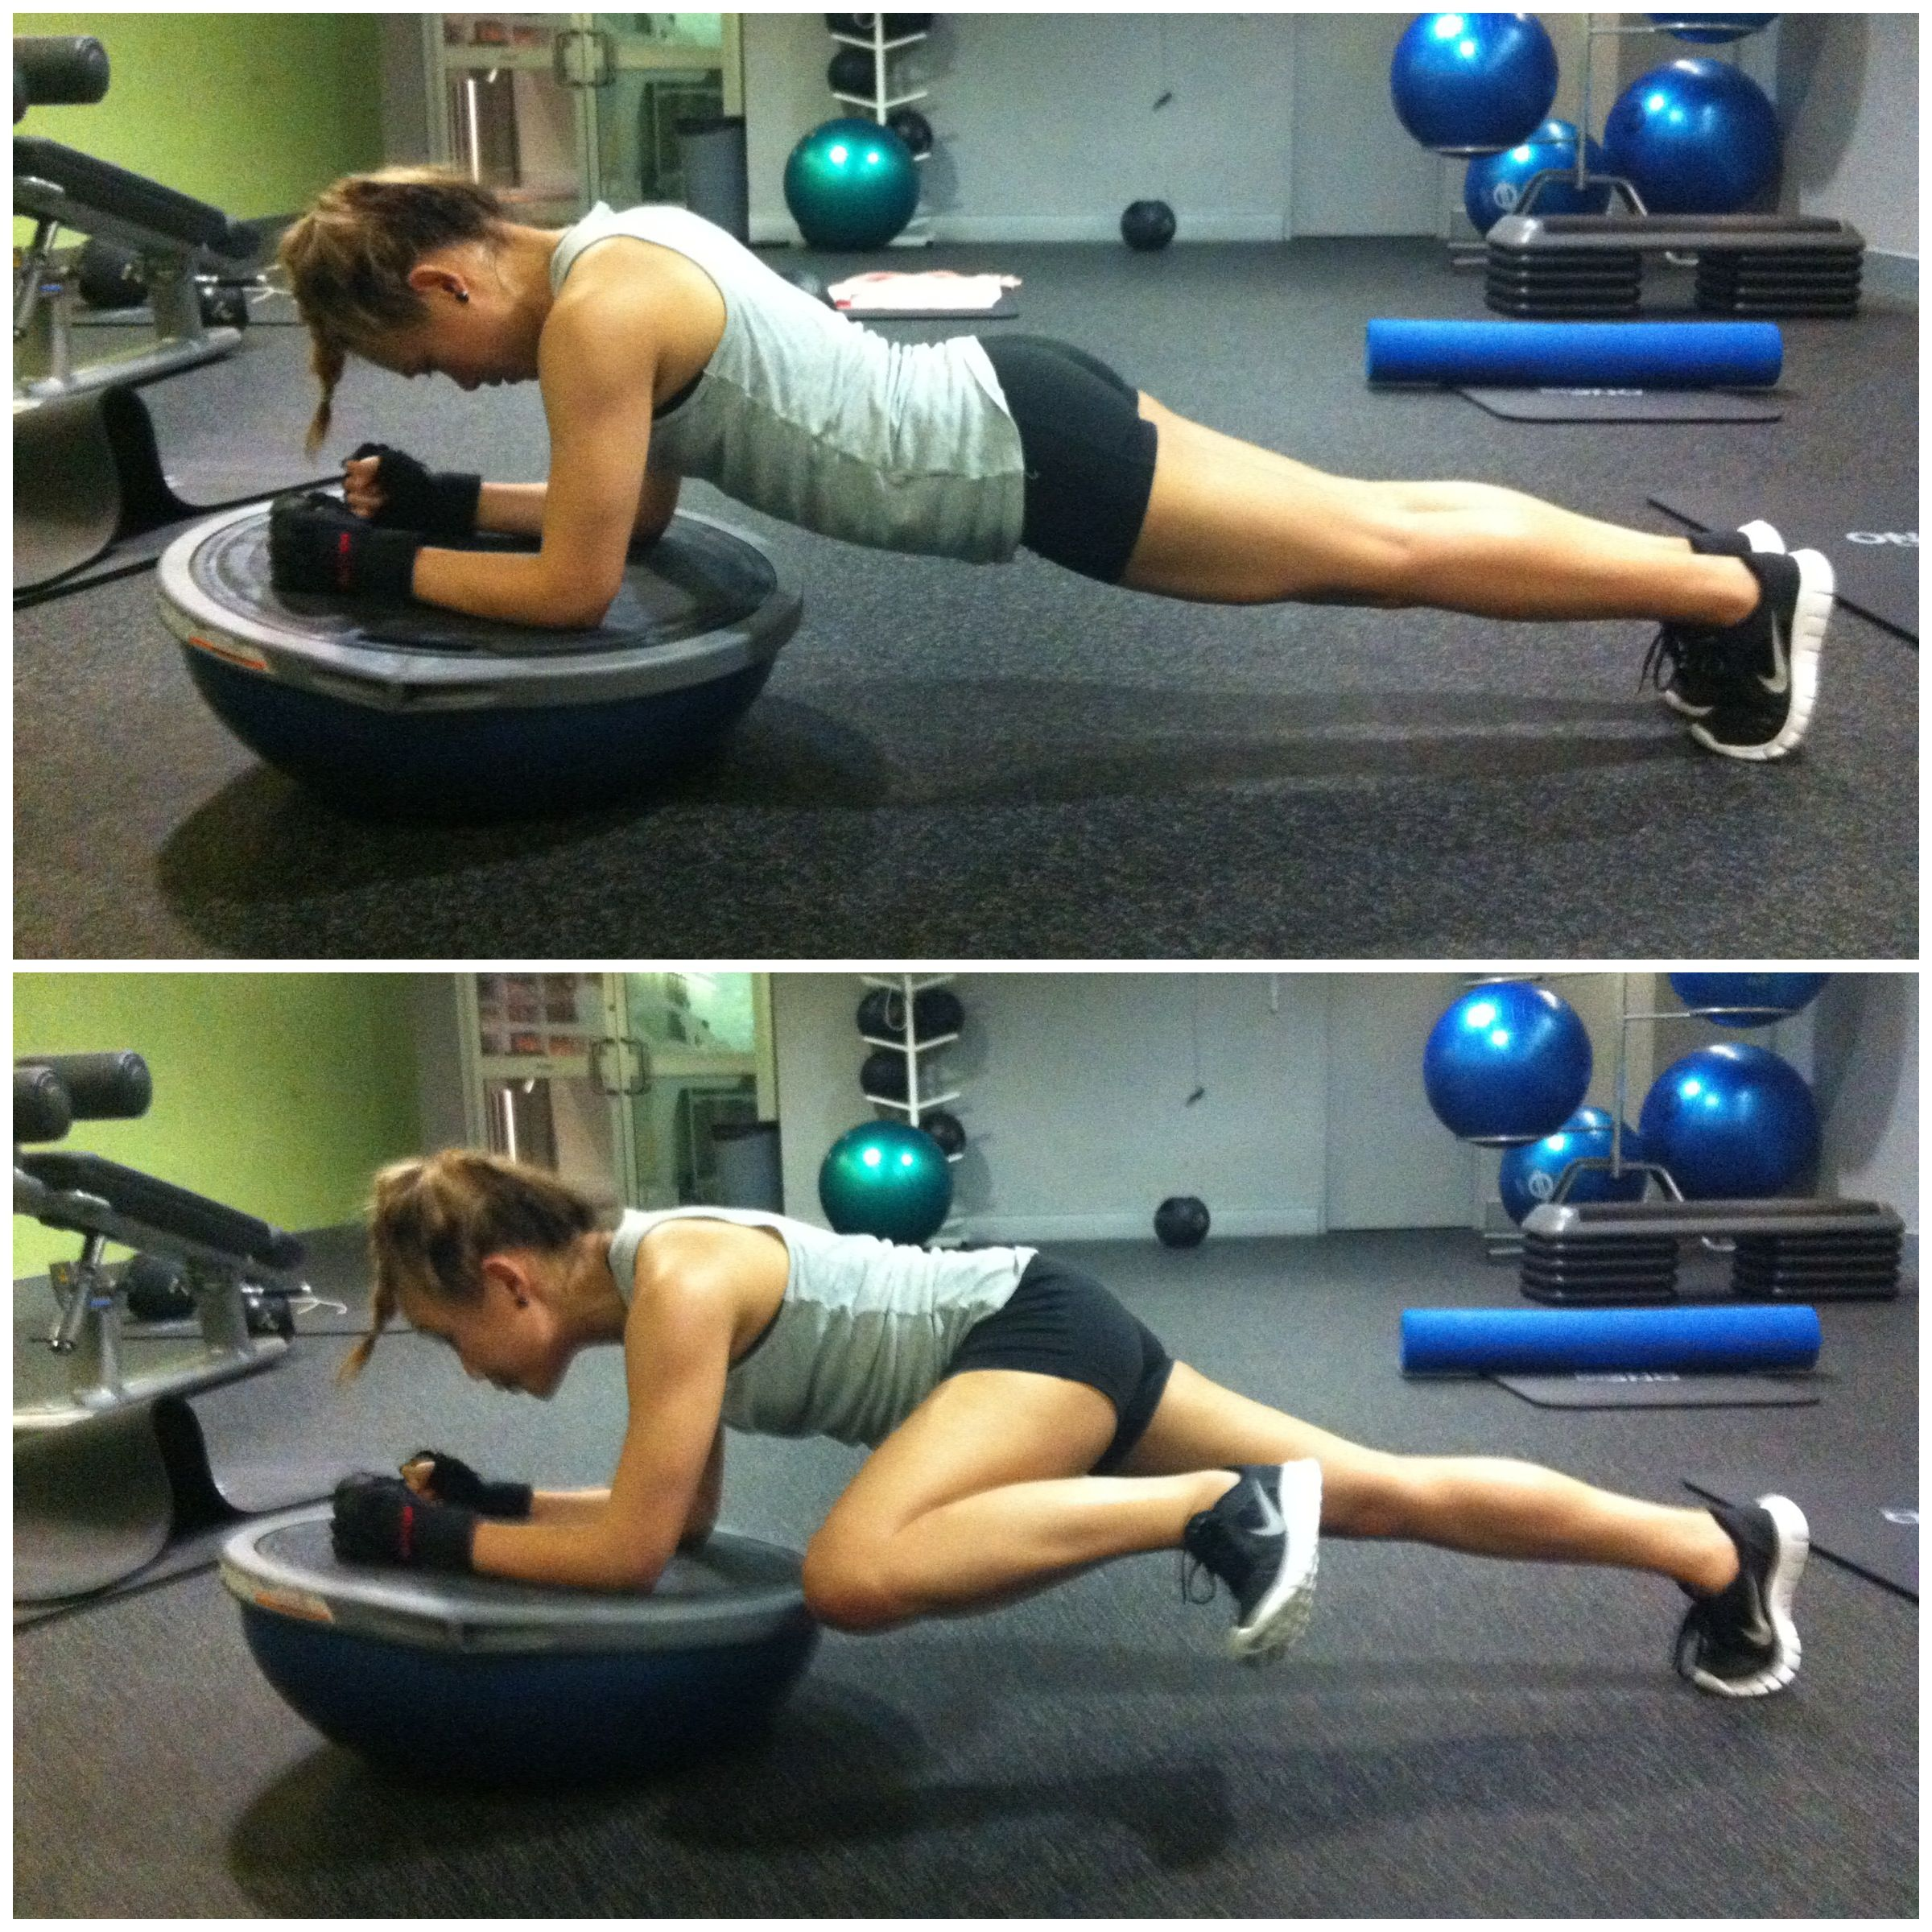 Plank Using Fit Ball And Bosu Ball: Plank With Kick On Bosu -- When I Get More Stable With The